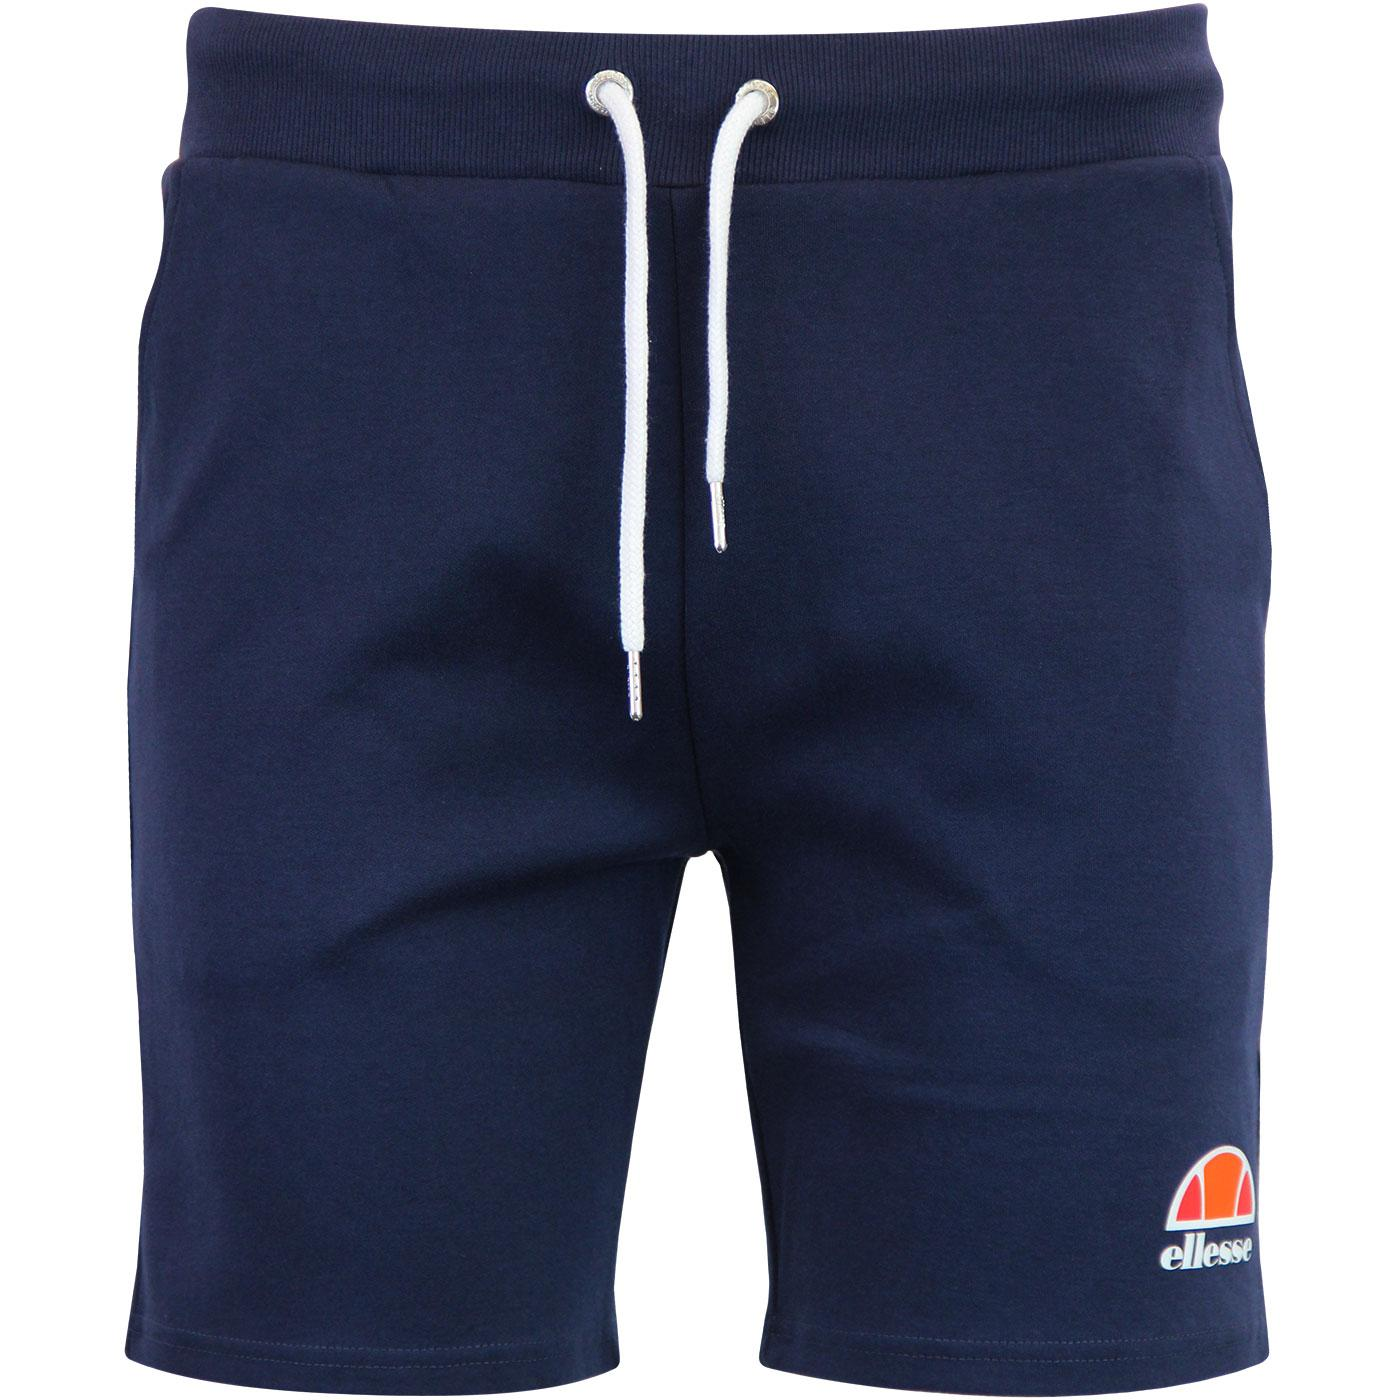 Crawford ELLESSE Retro Summer Sports Shorts NAVY